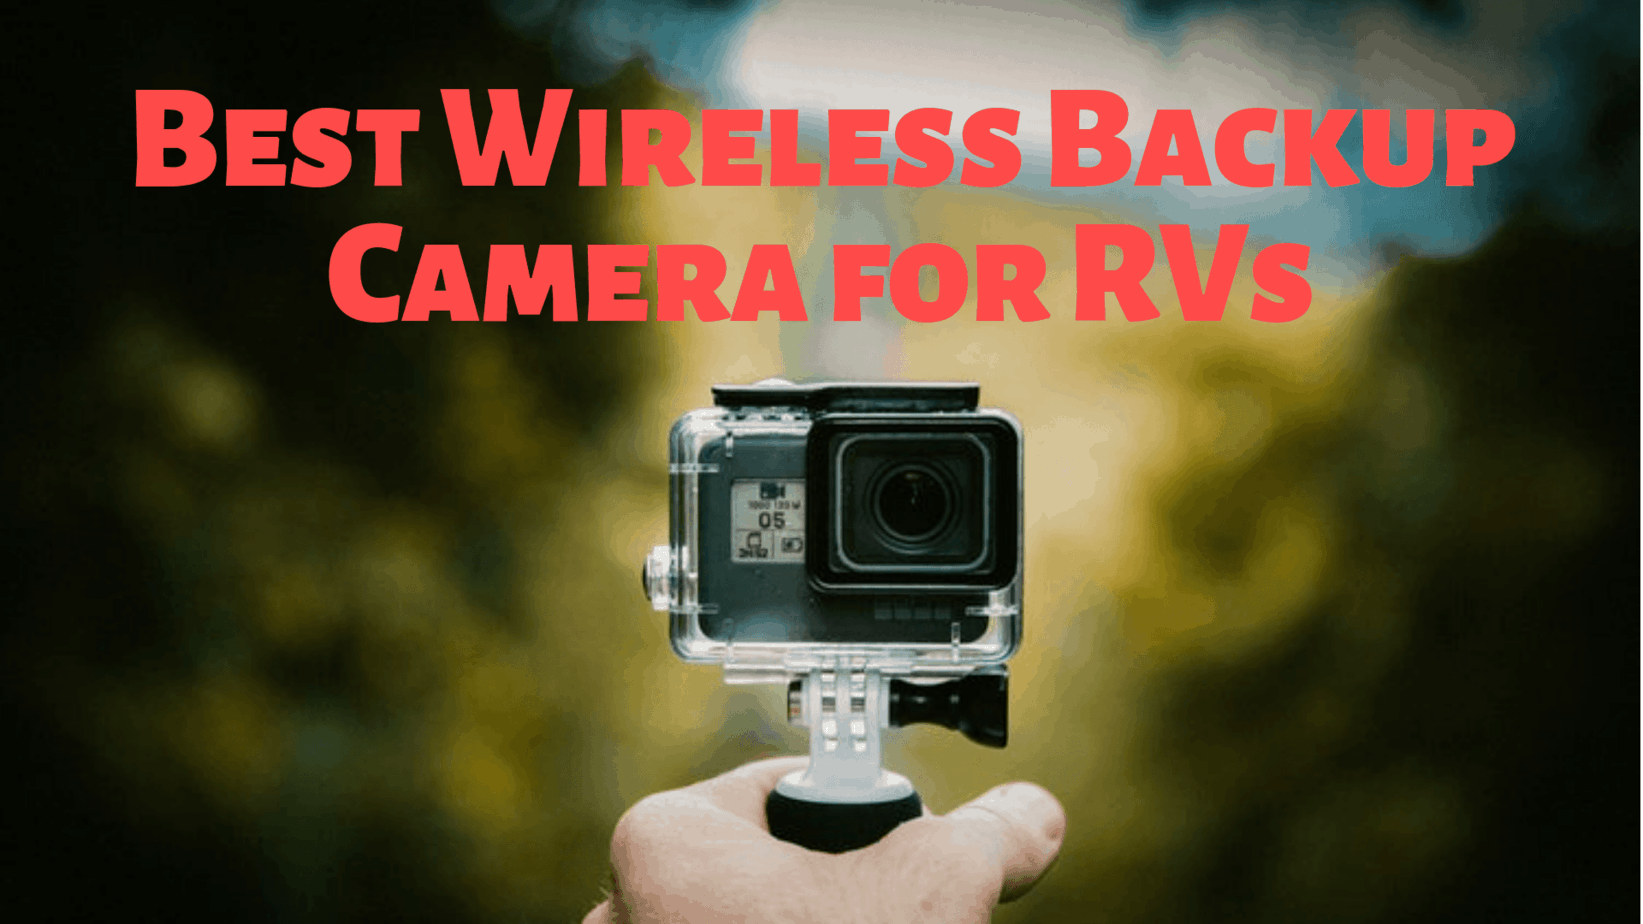 The Best Wireless Backup Camera for RVs – Do You Really Need One?